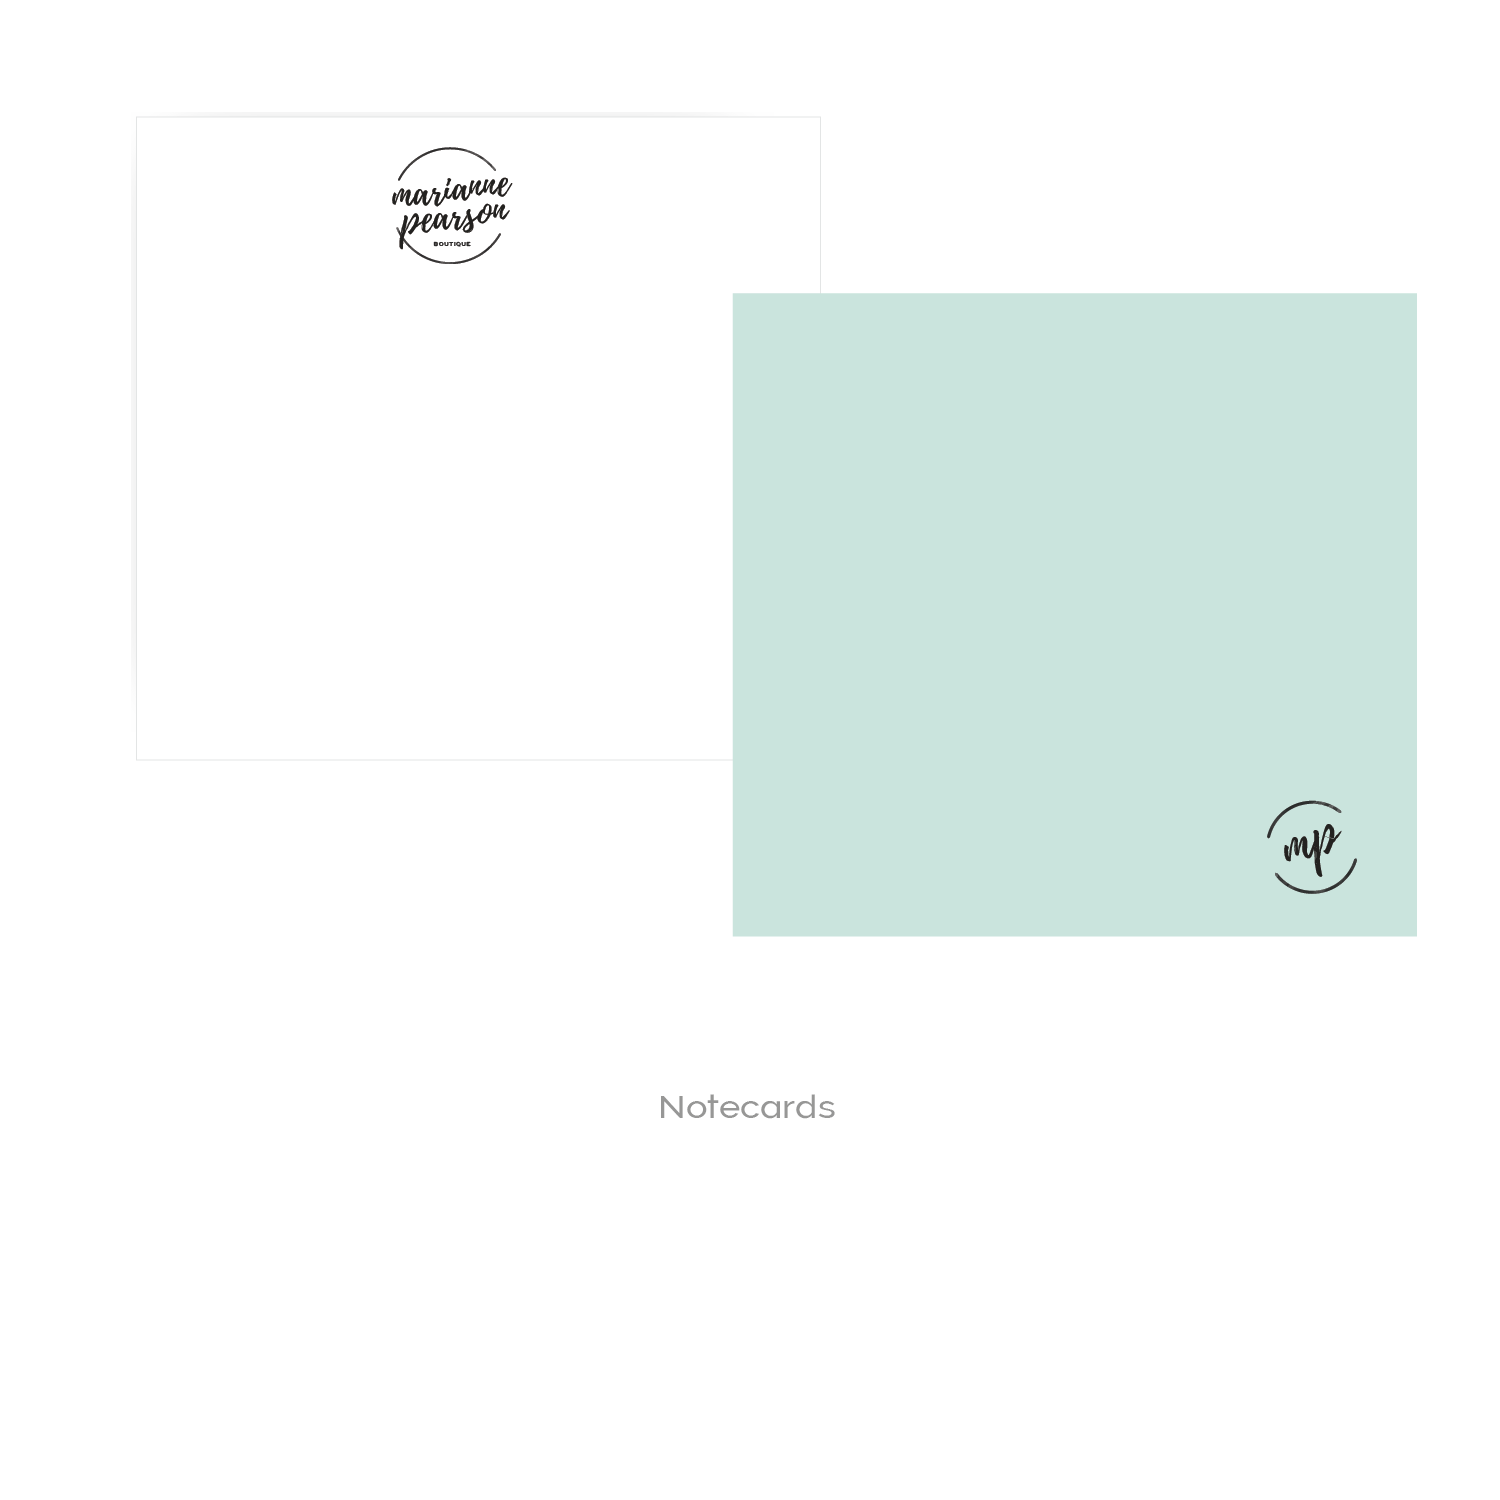 boutique premade logo Branding kit package-04.png